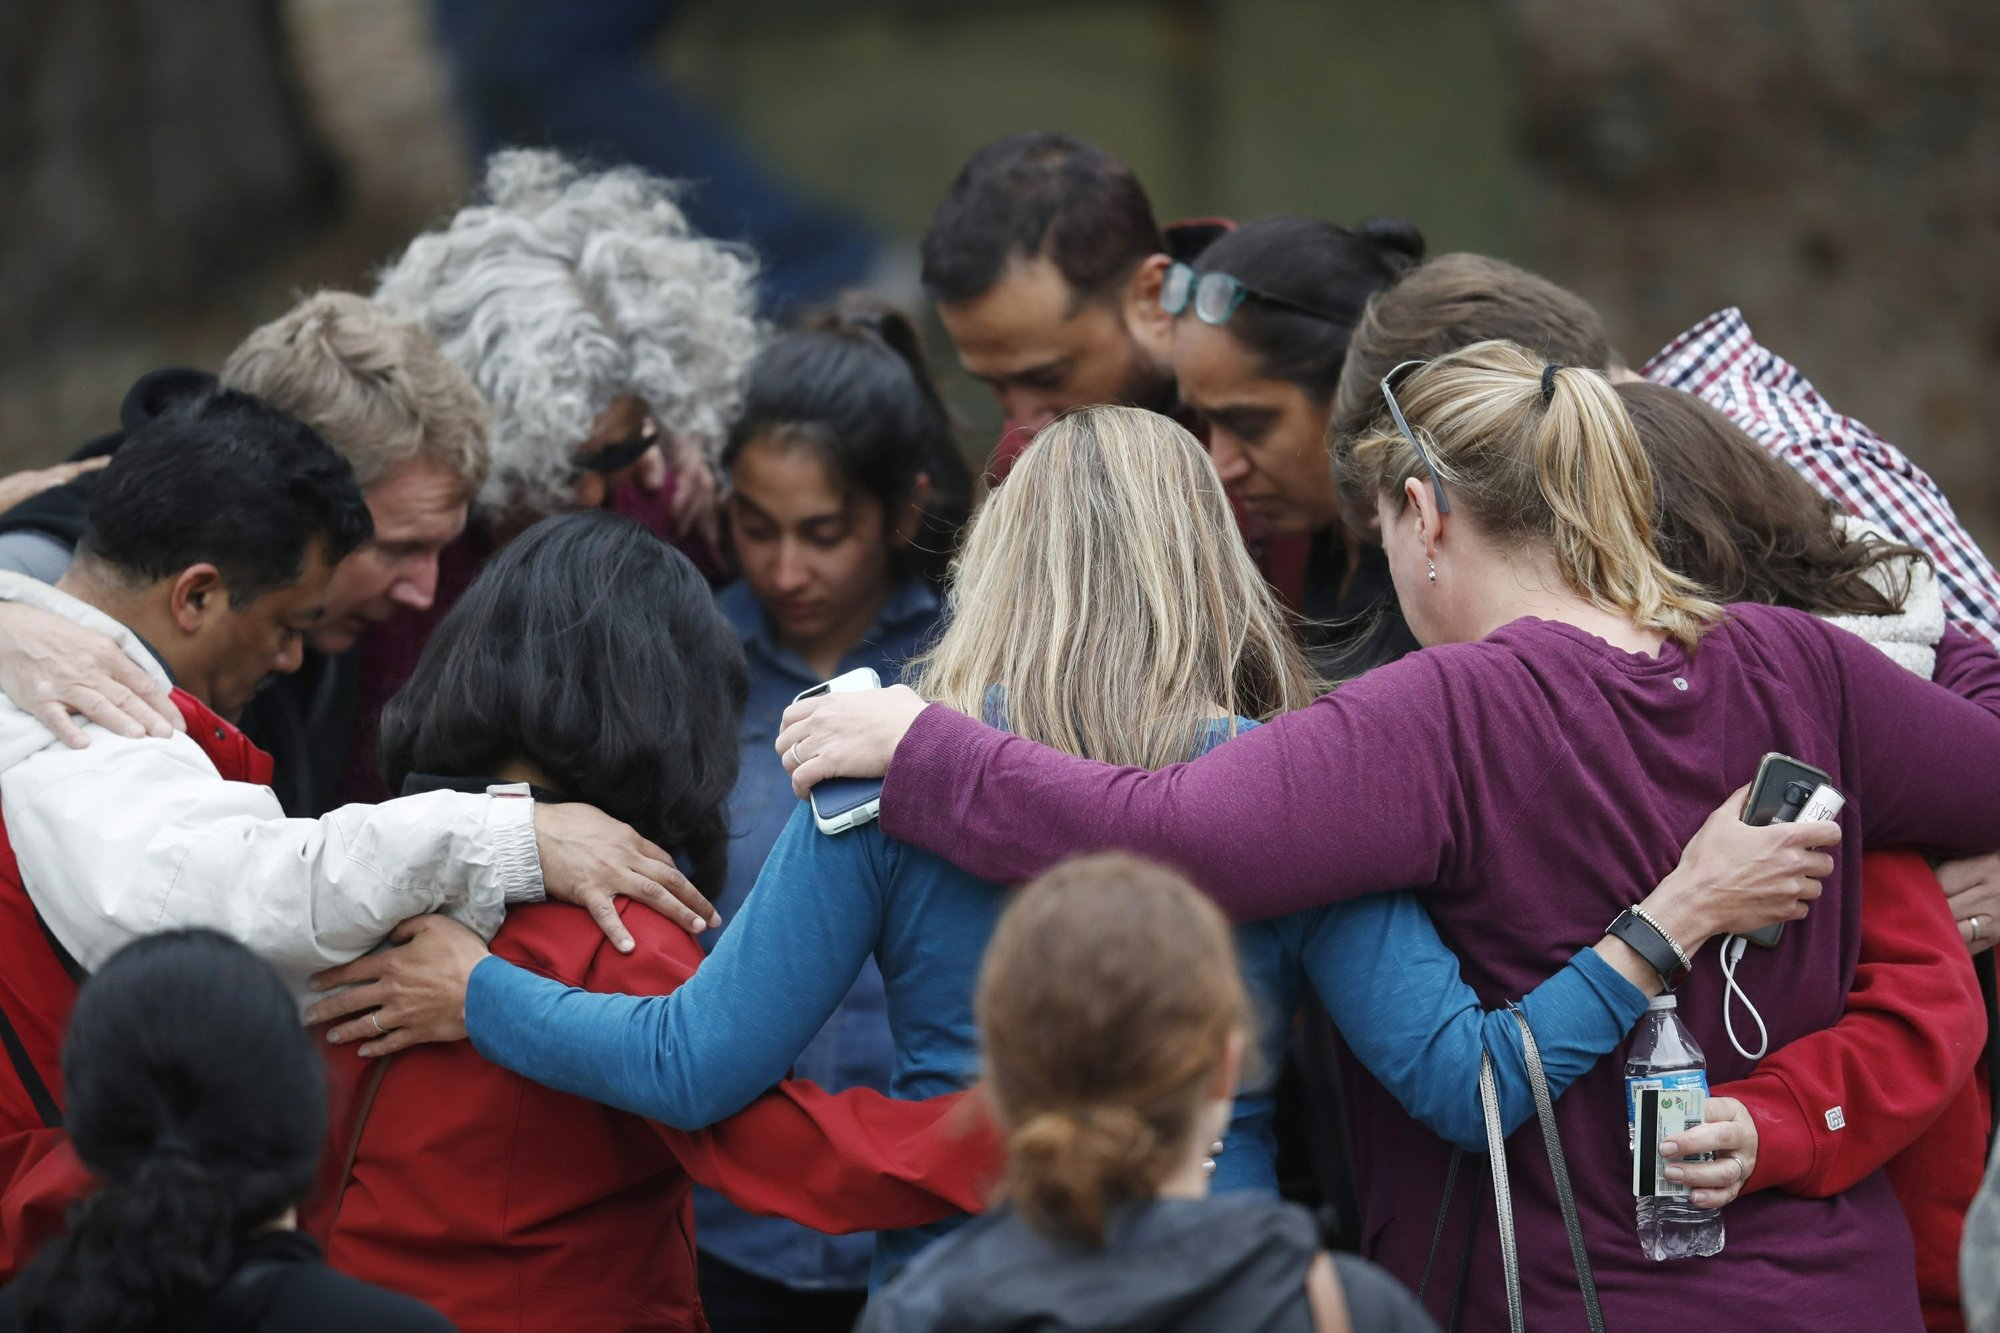 The Latest: Colorado school closes for week after shooting